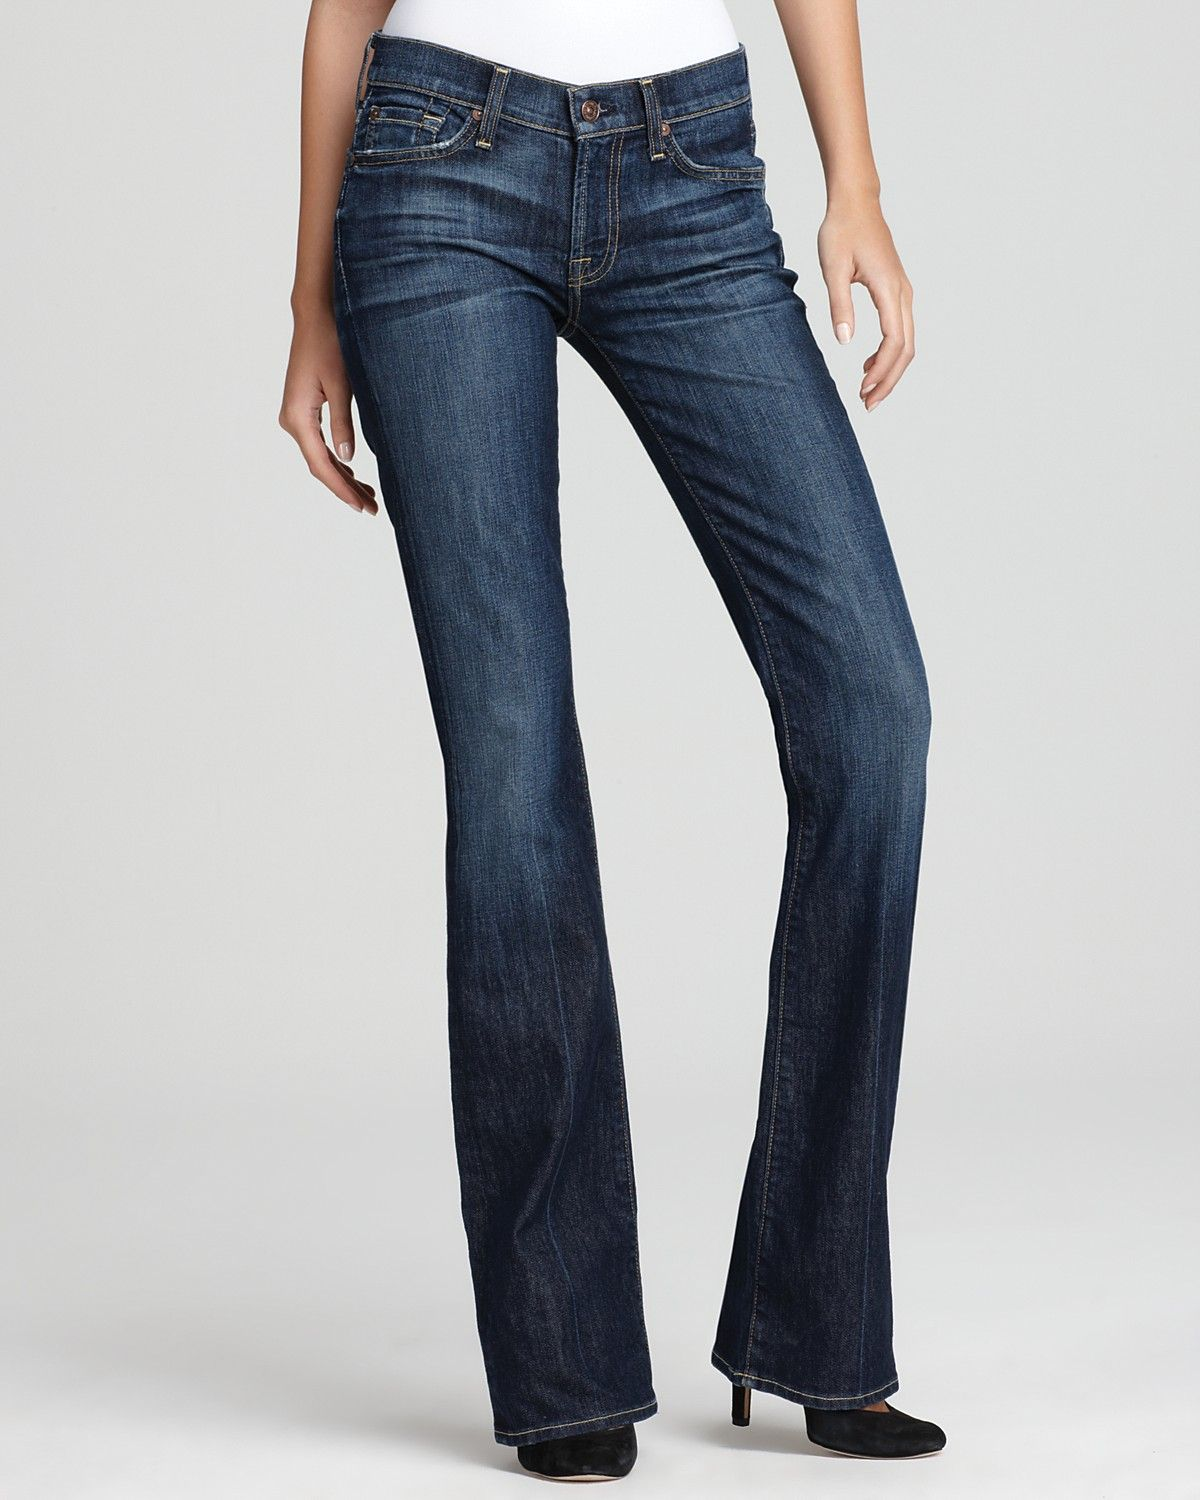 07ecc55150e 7 For All Mankind Jeans - Bootcut Jeans in Nouveau New York Dark |  Bloomingdale's